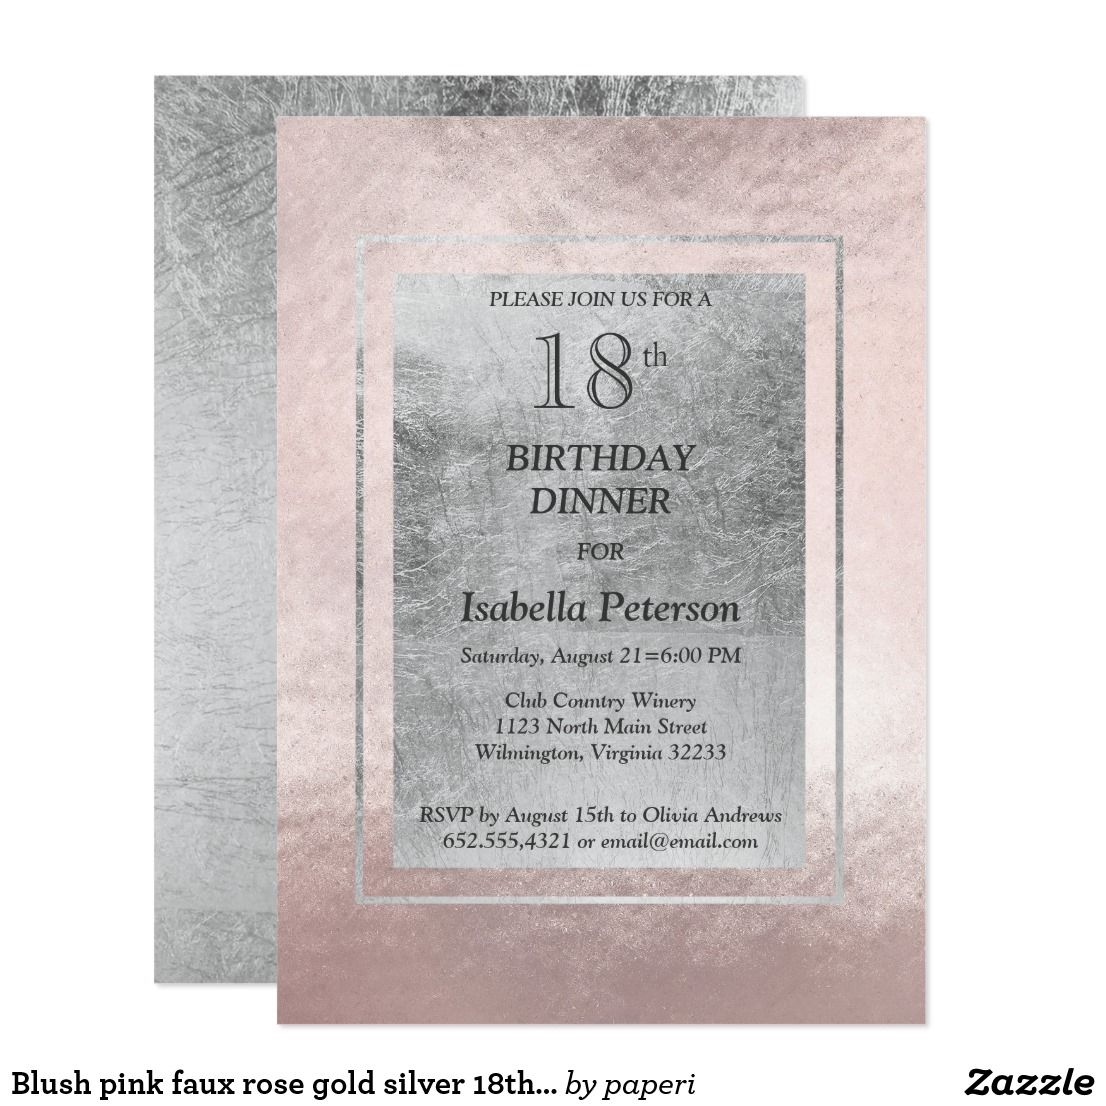 Blush Pink Faux Rose Gold Silver 18th Birthday